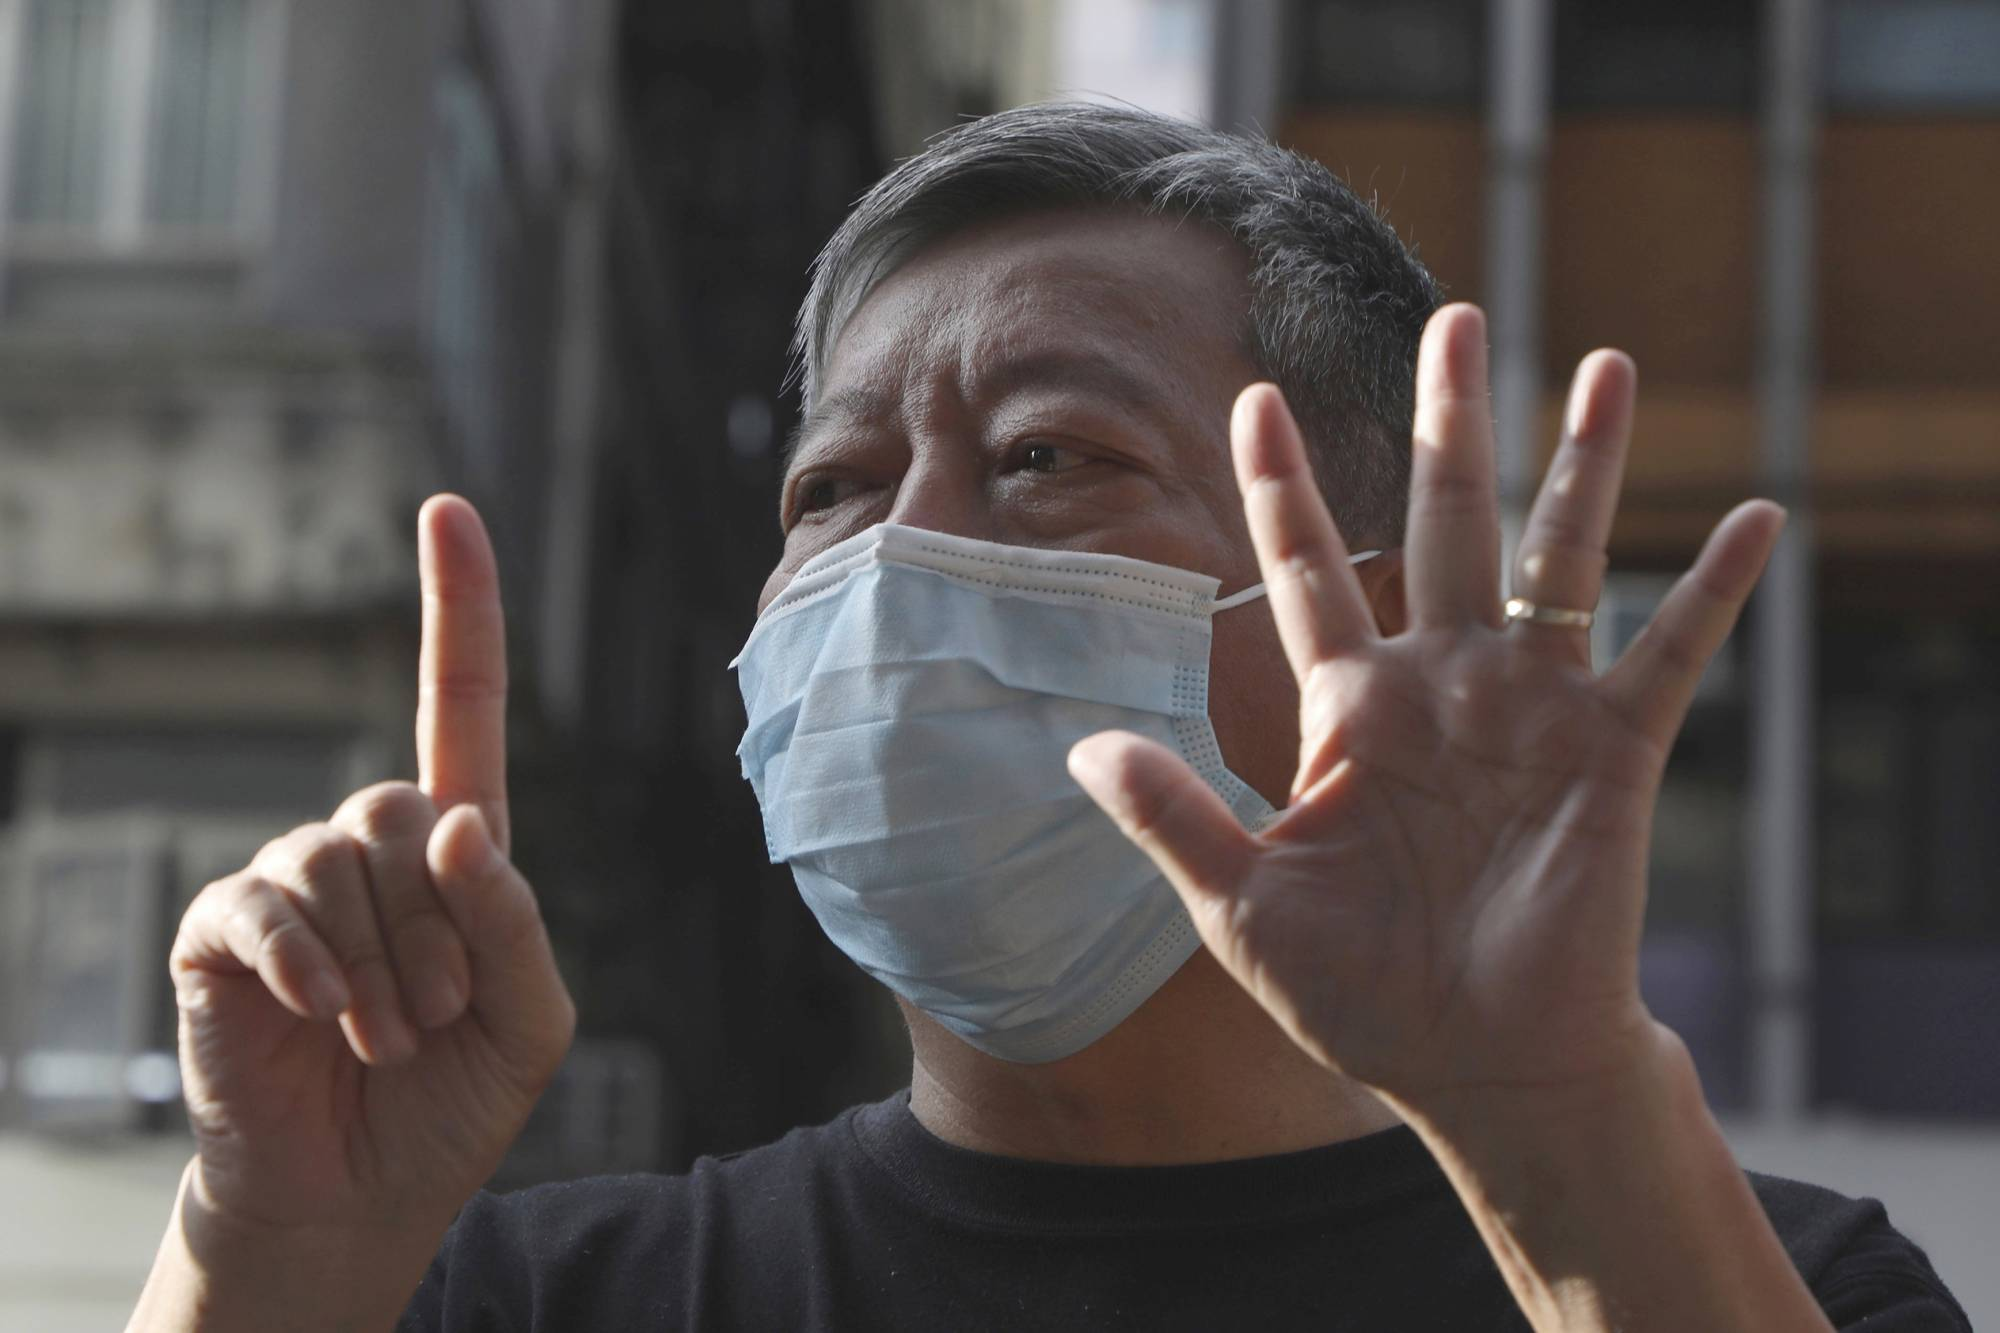 Prominent Hong Kong activist Lee Cheuk Yan reported that his Zoom account shut down in May before he was to host an event on a controversial extradition bill, despite the city's guarantees of free speech. | AP